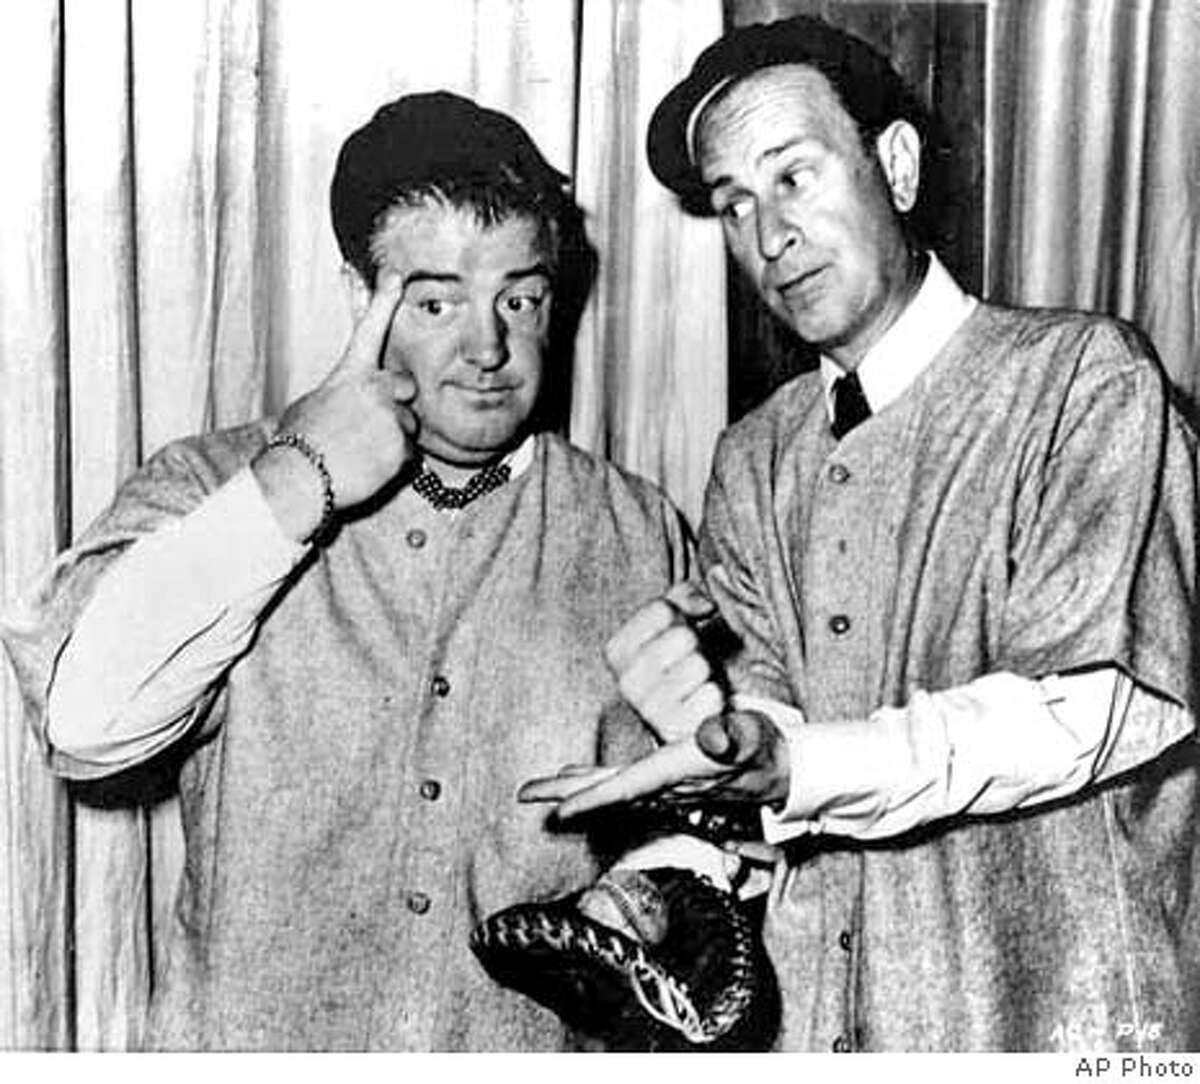 Bud Abbott, right, and his partner Lou Costello, do their famous baseball sketch in an undated photo. They were best remembered for their zany